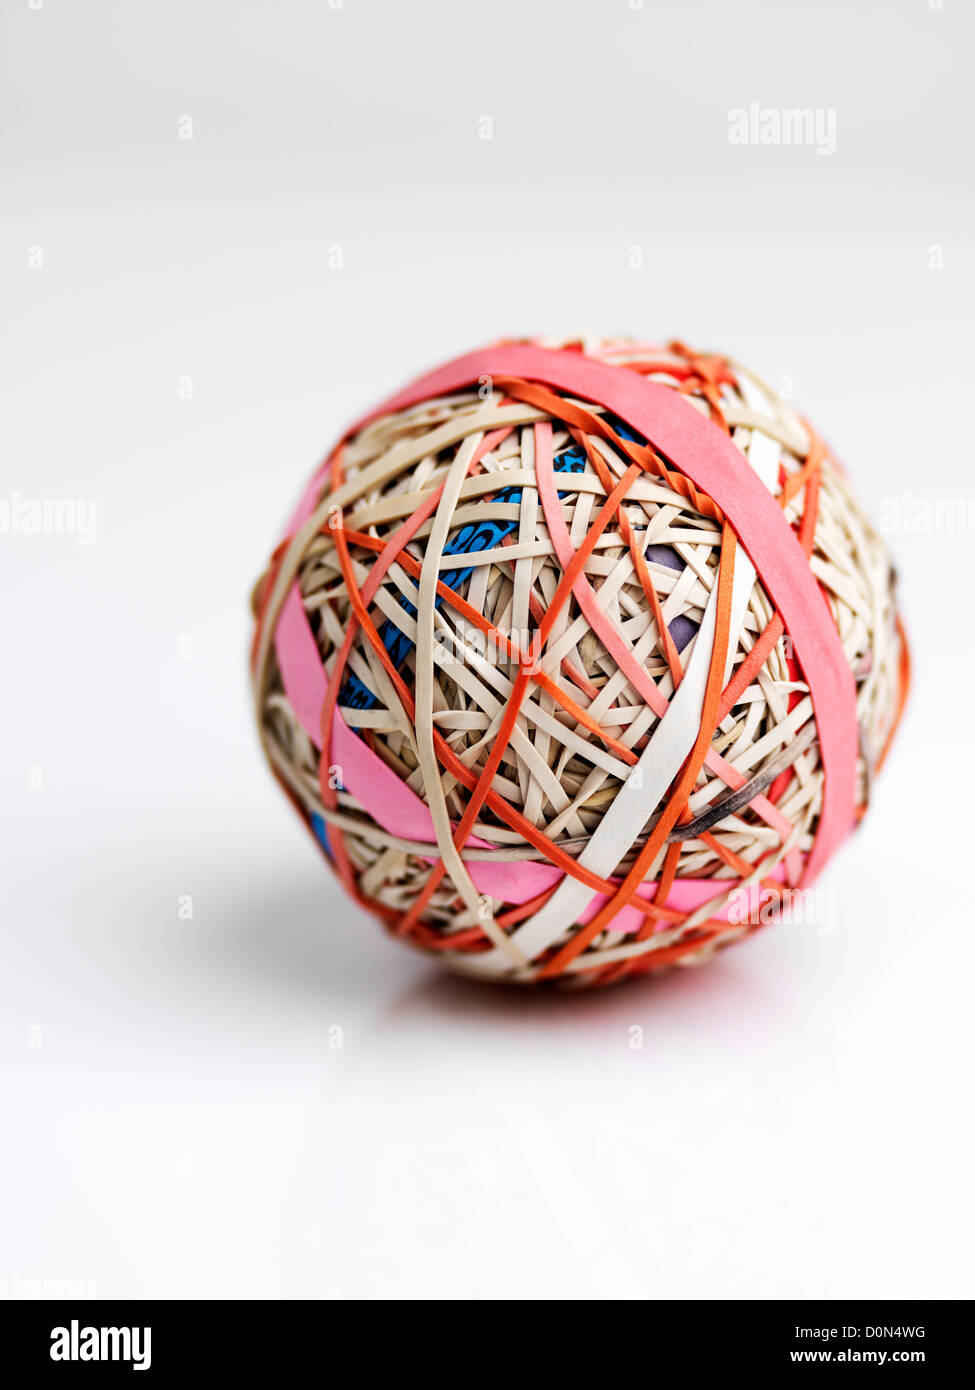 rubber band ball, ball made up of rubber bands wound over each other Stock Foto